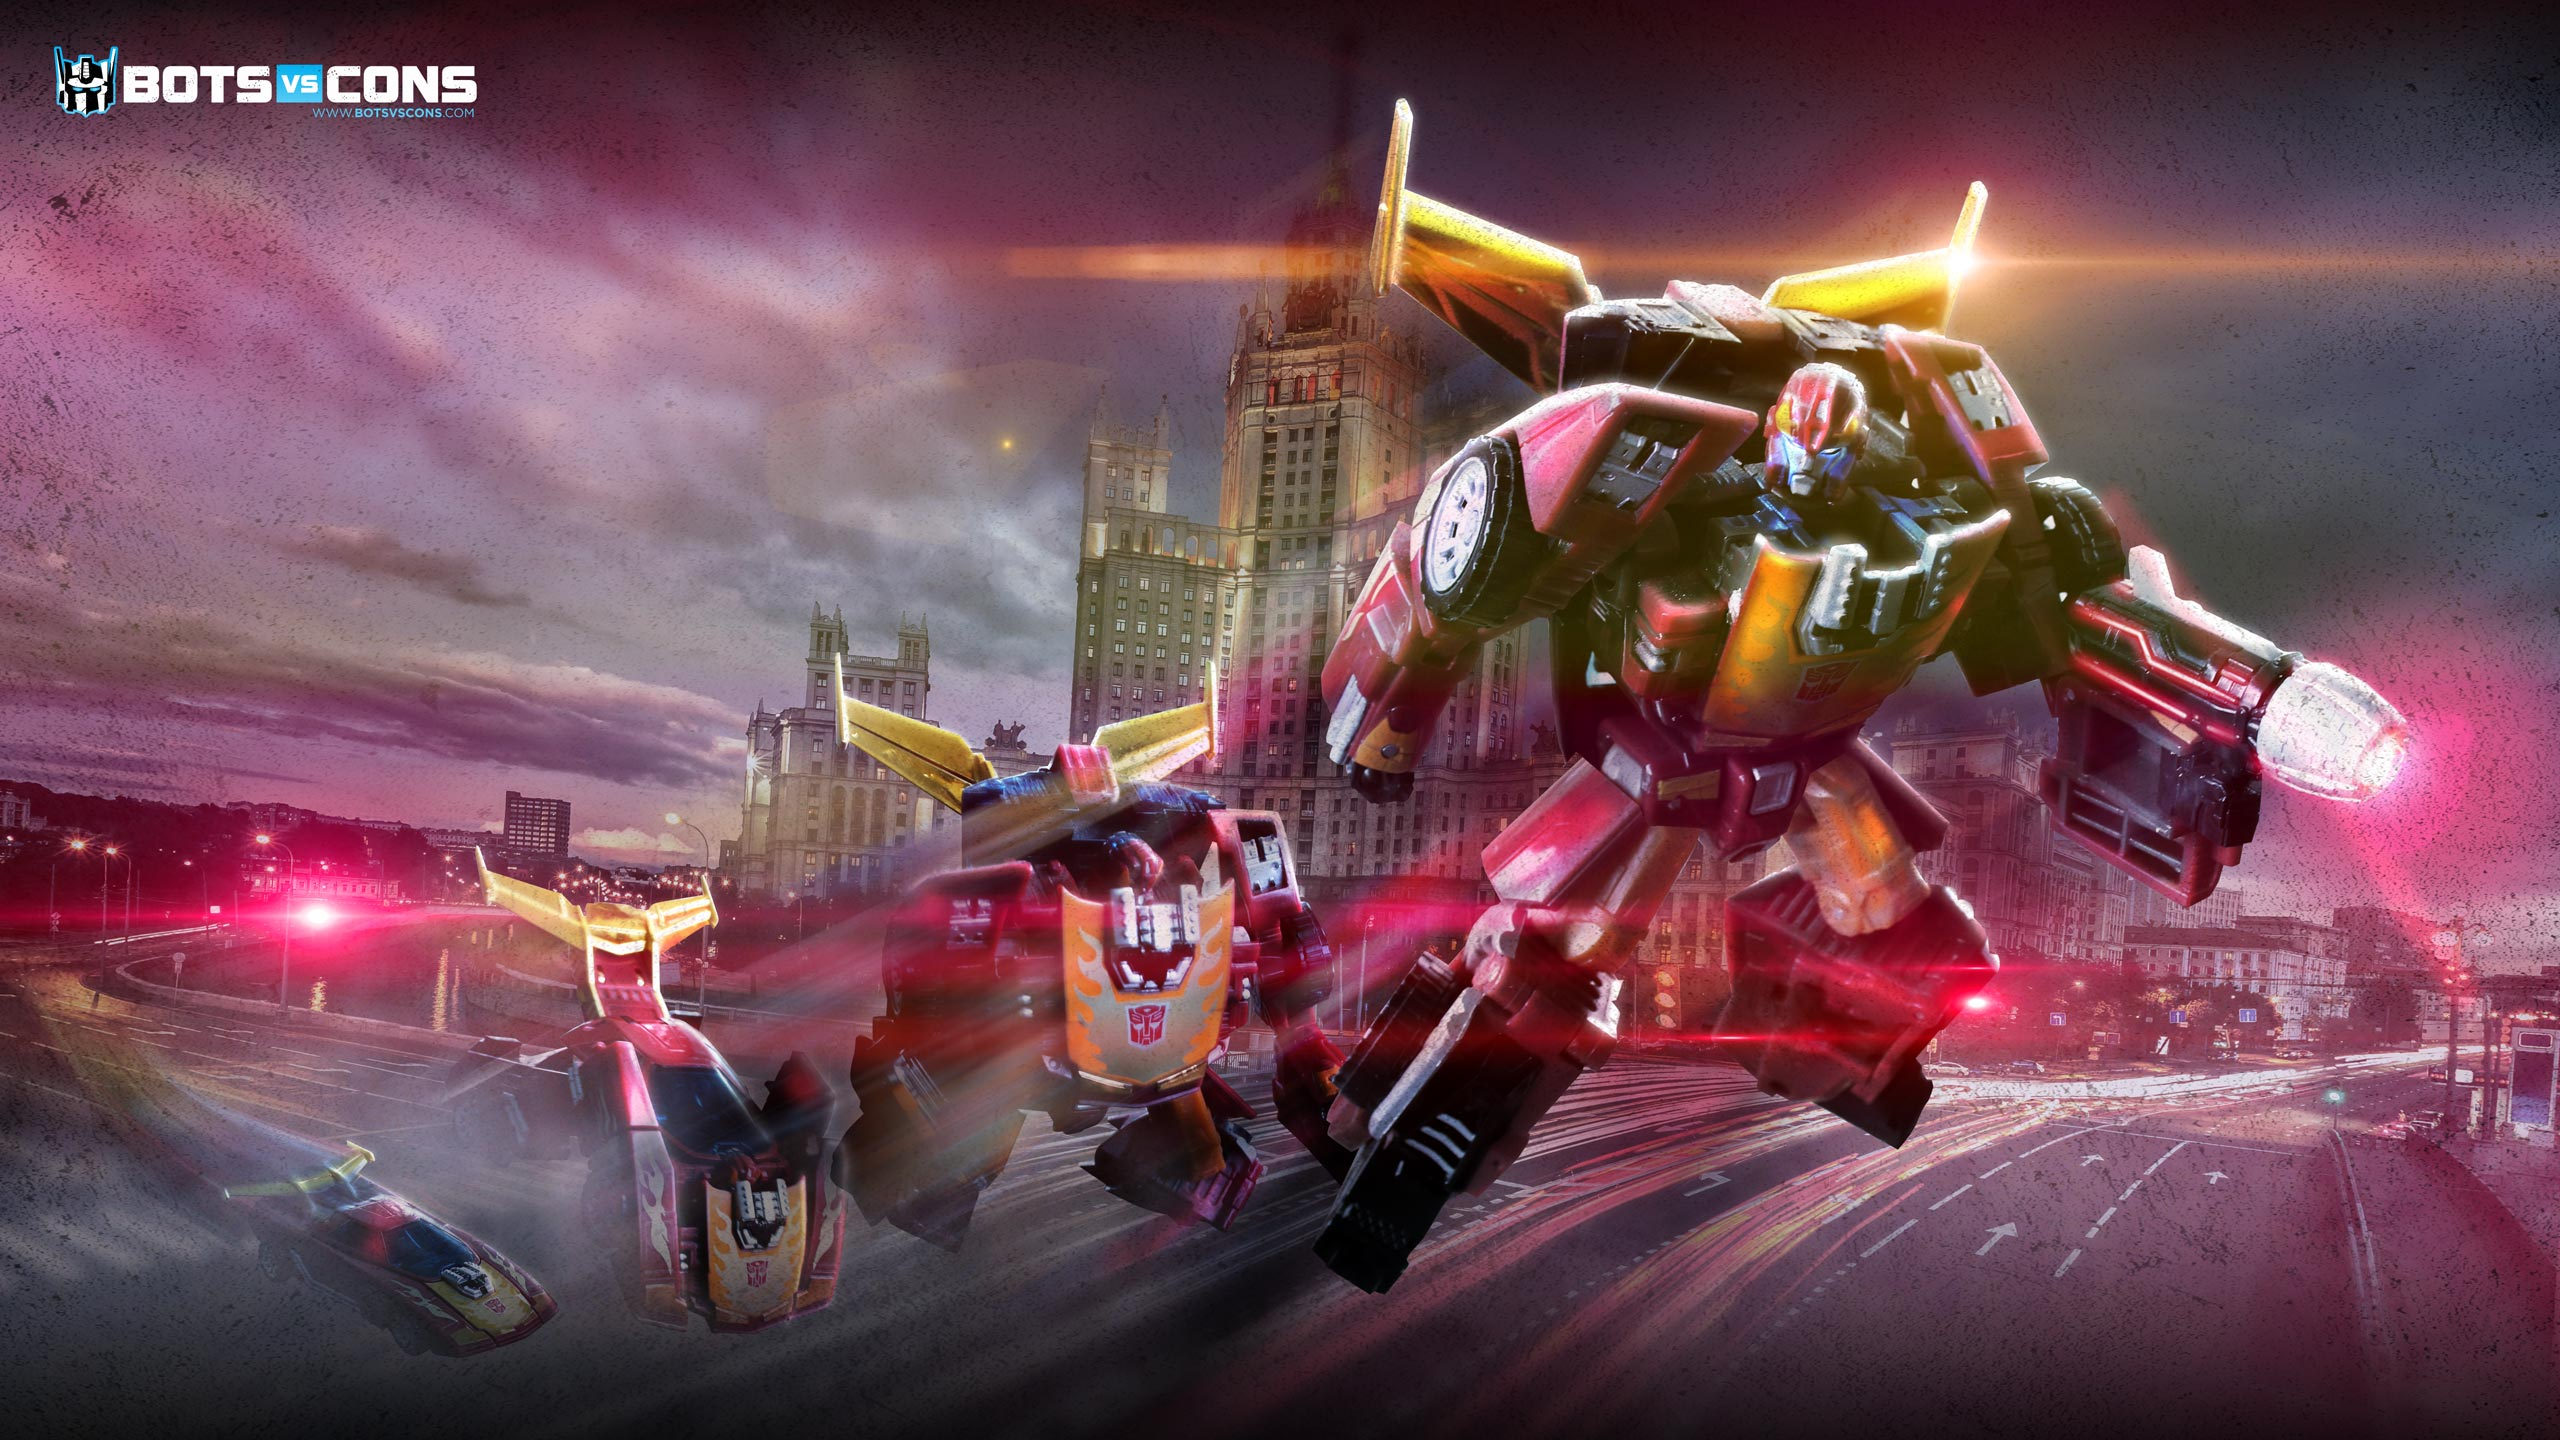 Hot Rod Transform Transformers Wallpaper